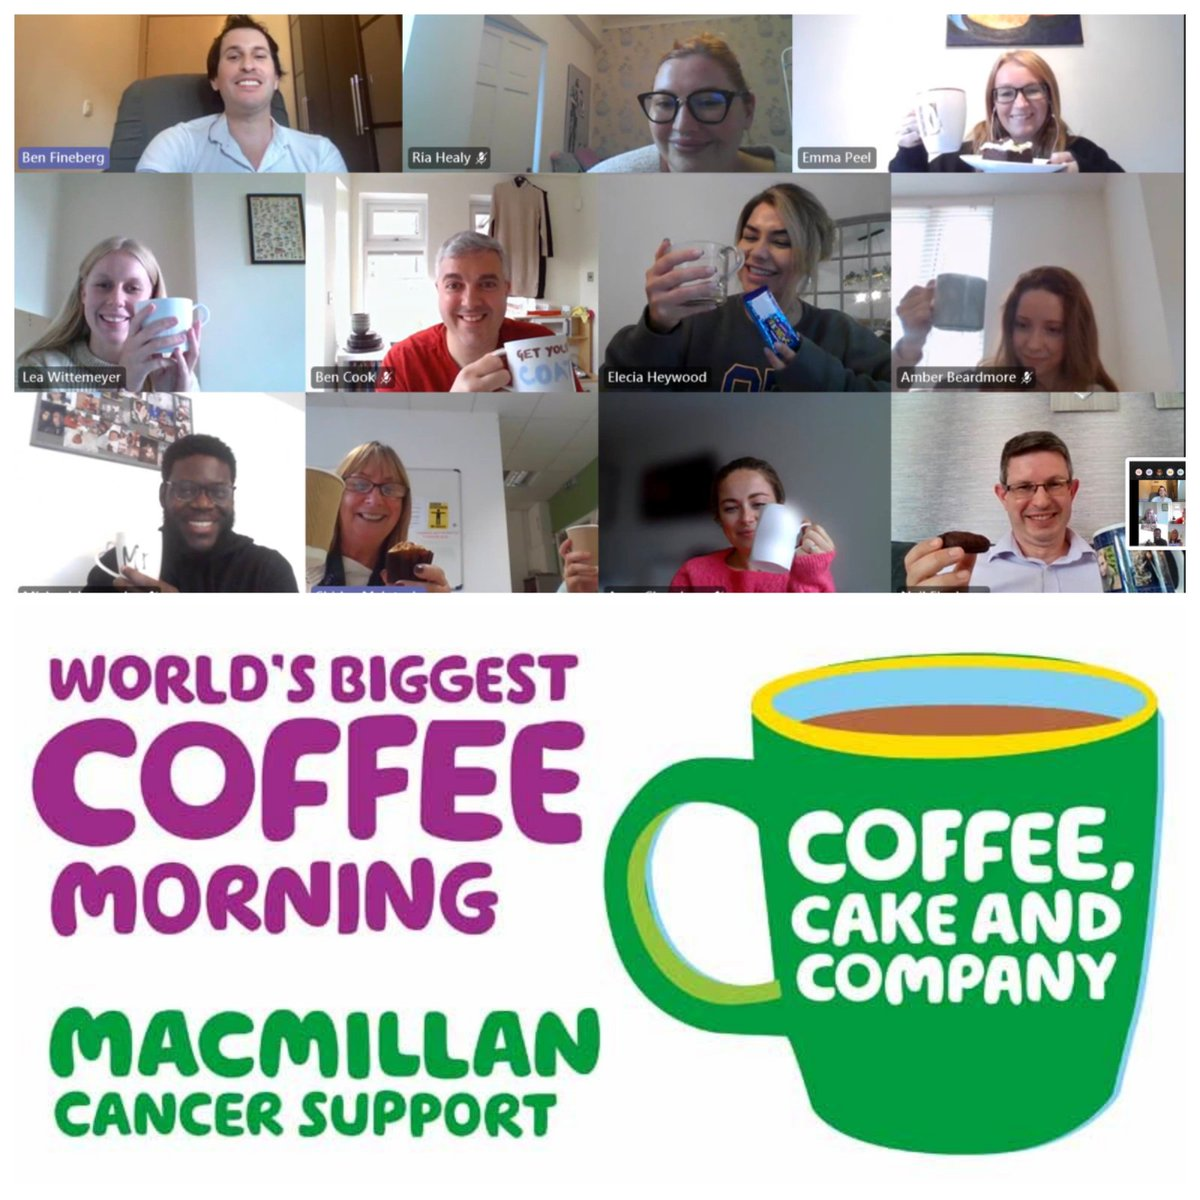 Our weekly team meeting finished off this afternoon with a coffee and a cake to support the #macmillancofeemorning, raising awareness for  @macmillancancer and the wonderful work they do throughout the year.   For more information: https://t.co/SklzvbKOAr  #ThankYouMacmillan https://t.co/DunY3W6sPe